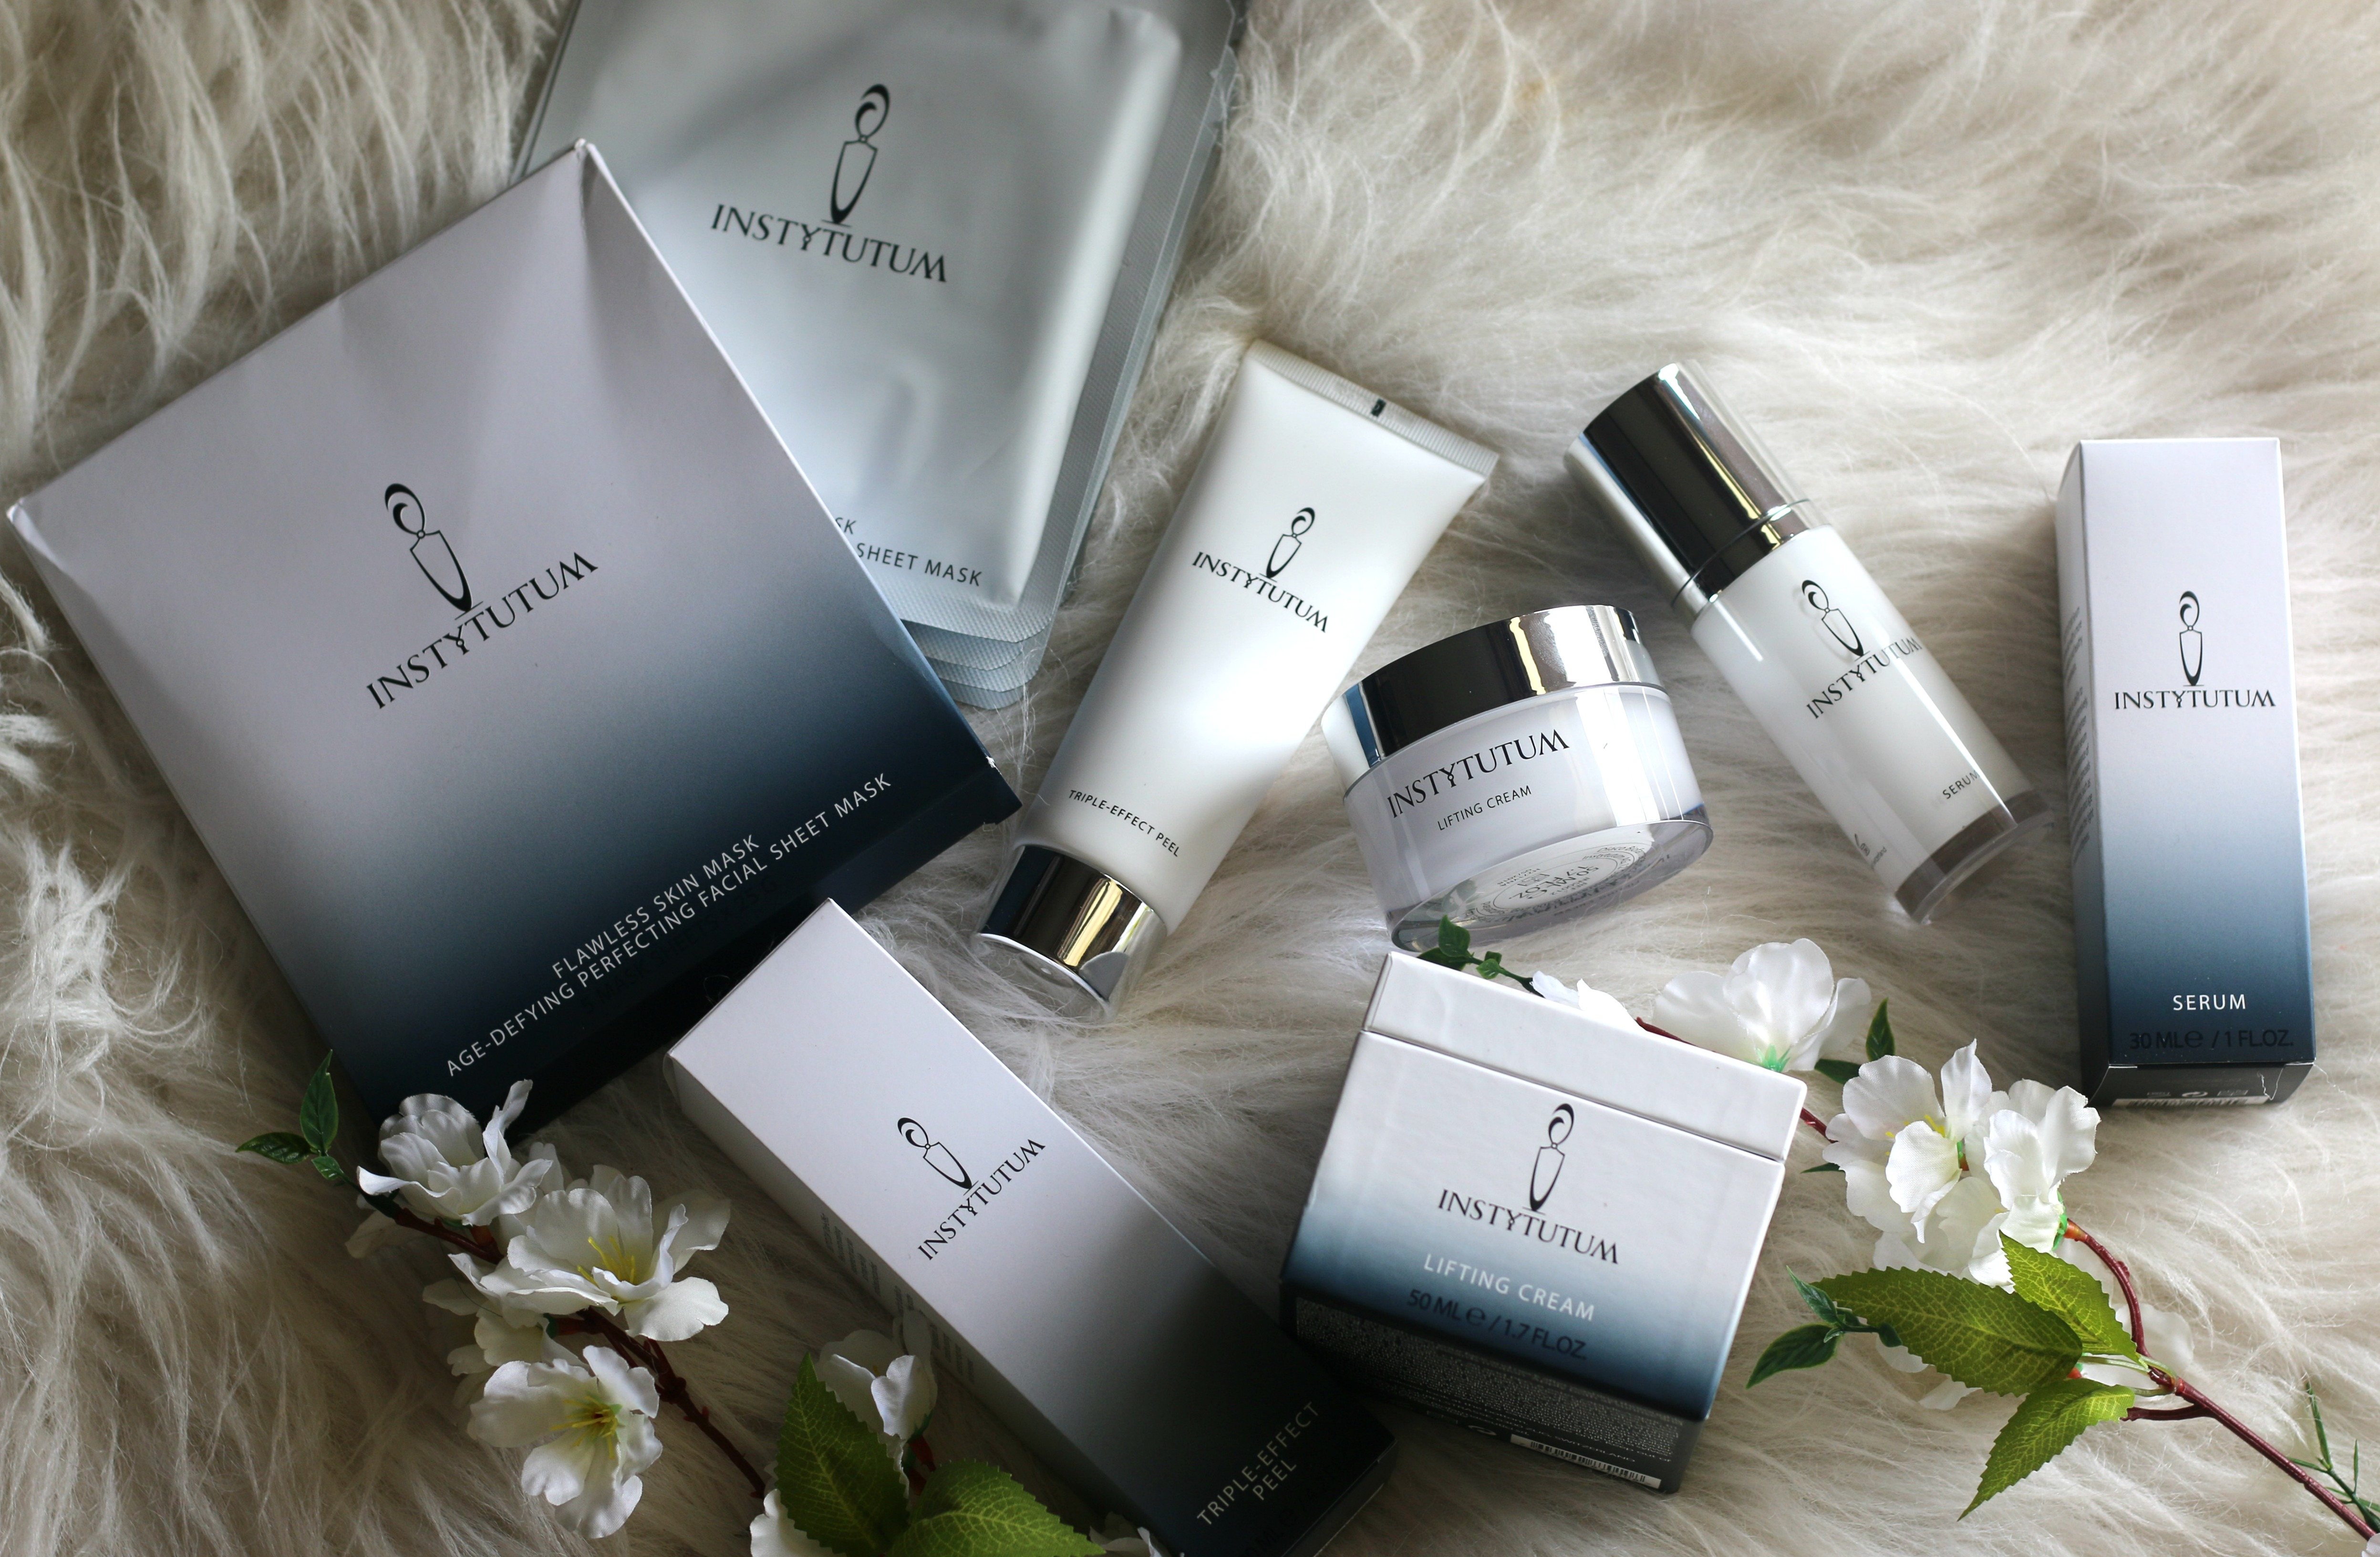 Journey to flawless skin starts here; INSTYTUTUM – Luxury Skincare